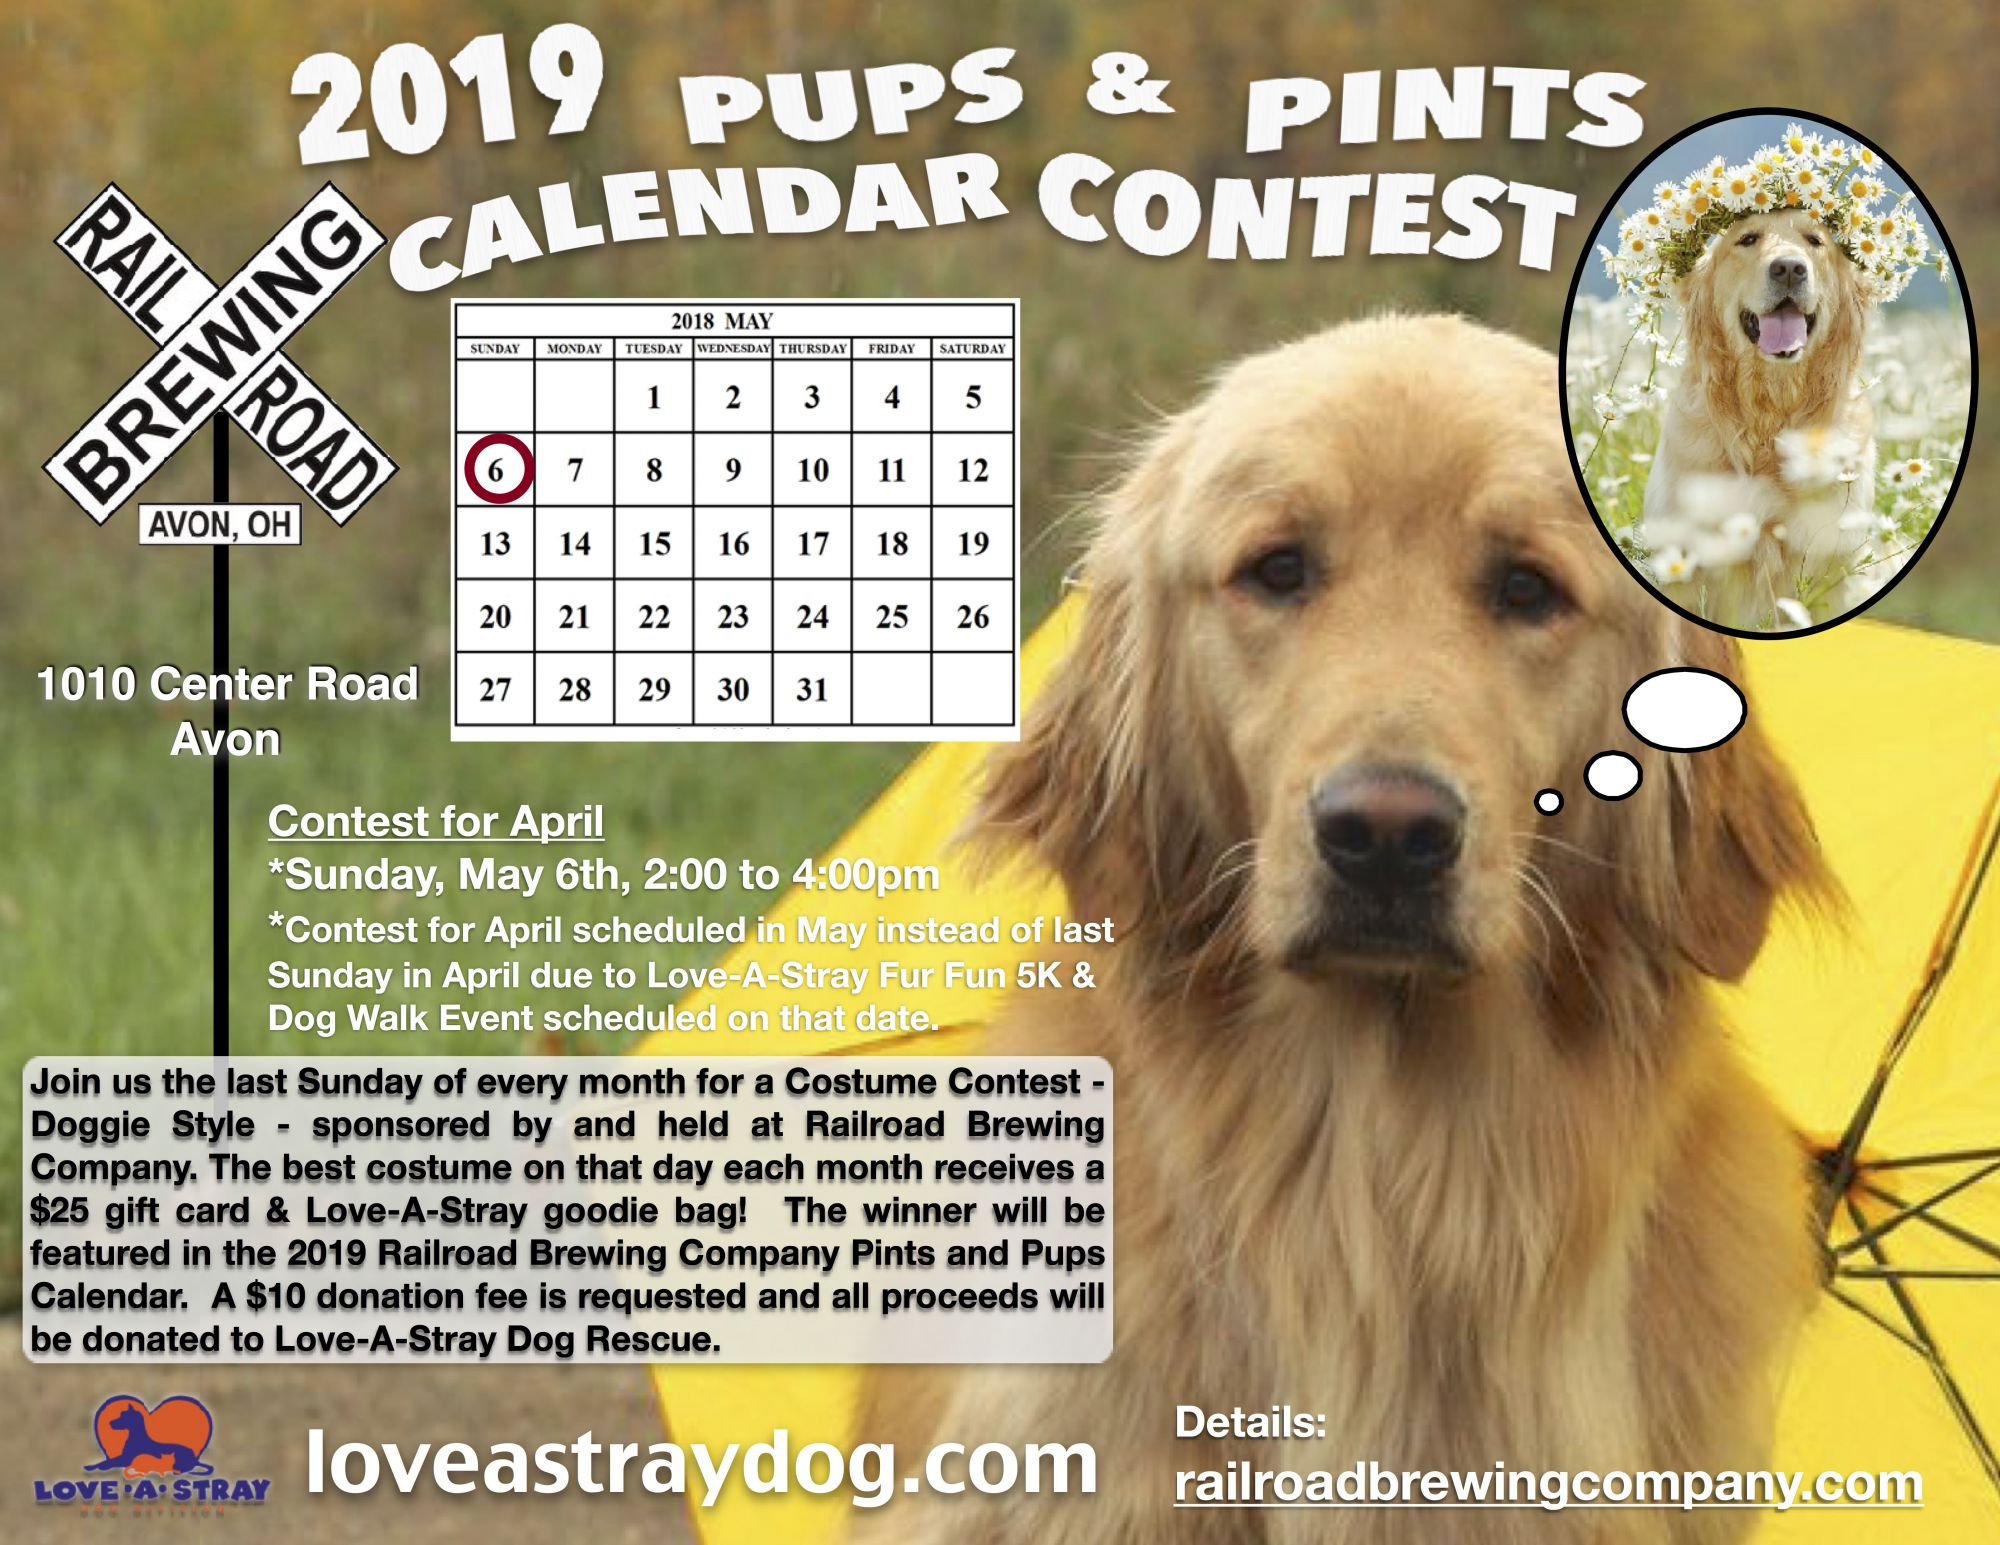 2019 Pups & Pints Calendar Contest - April